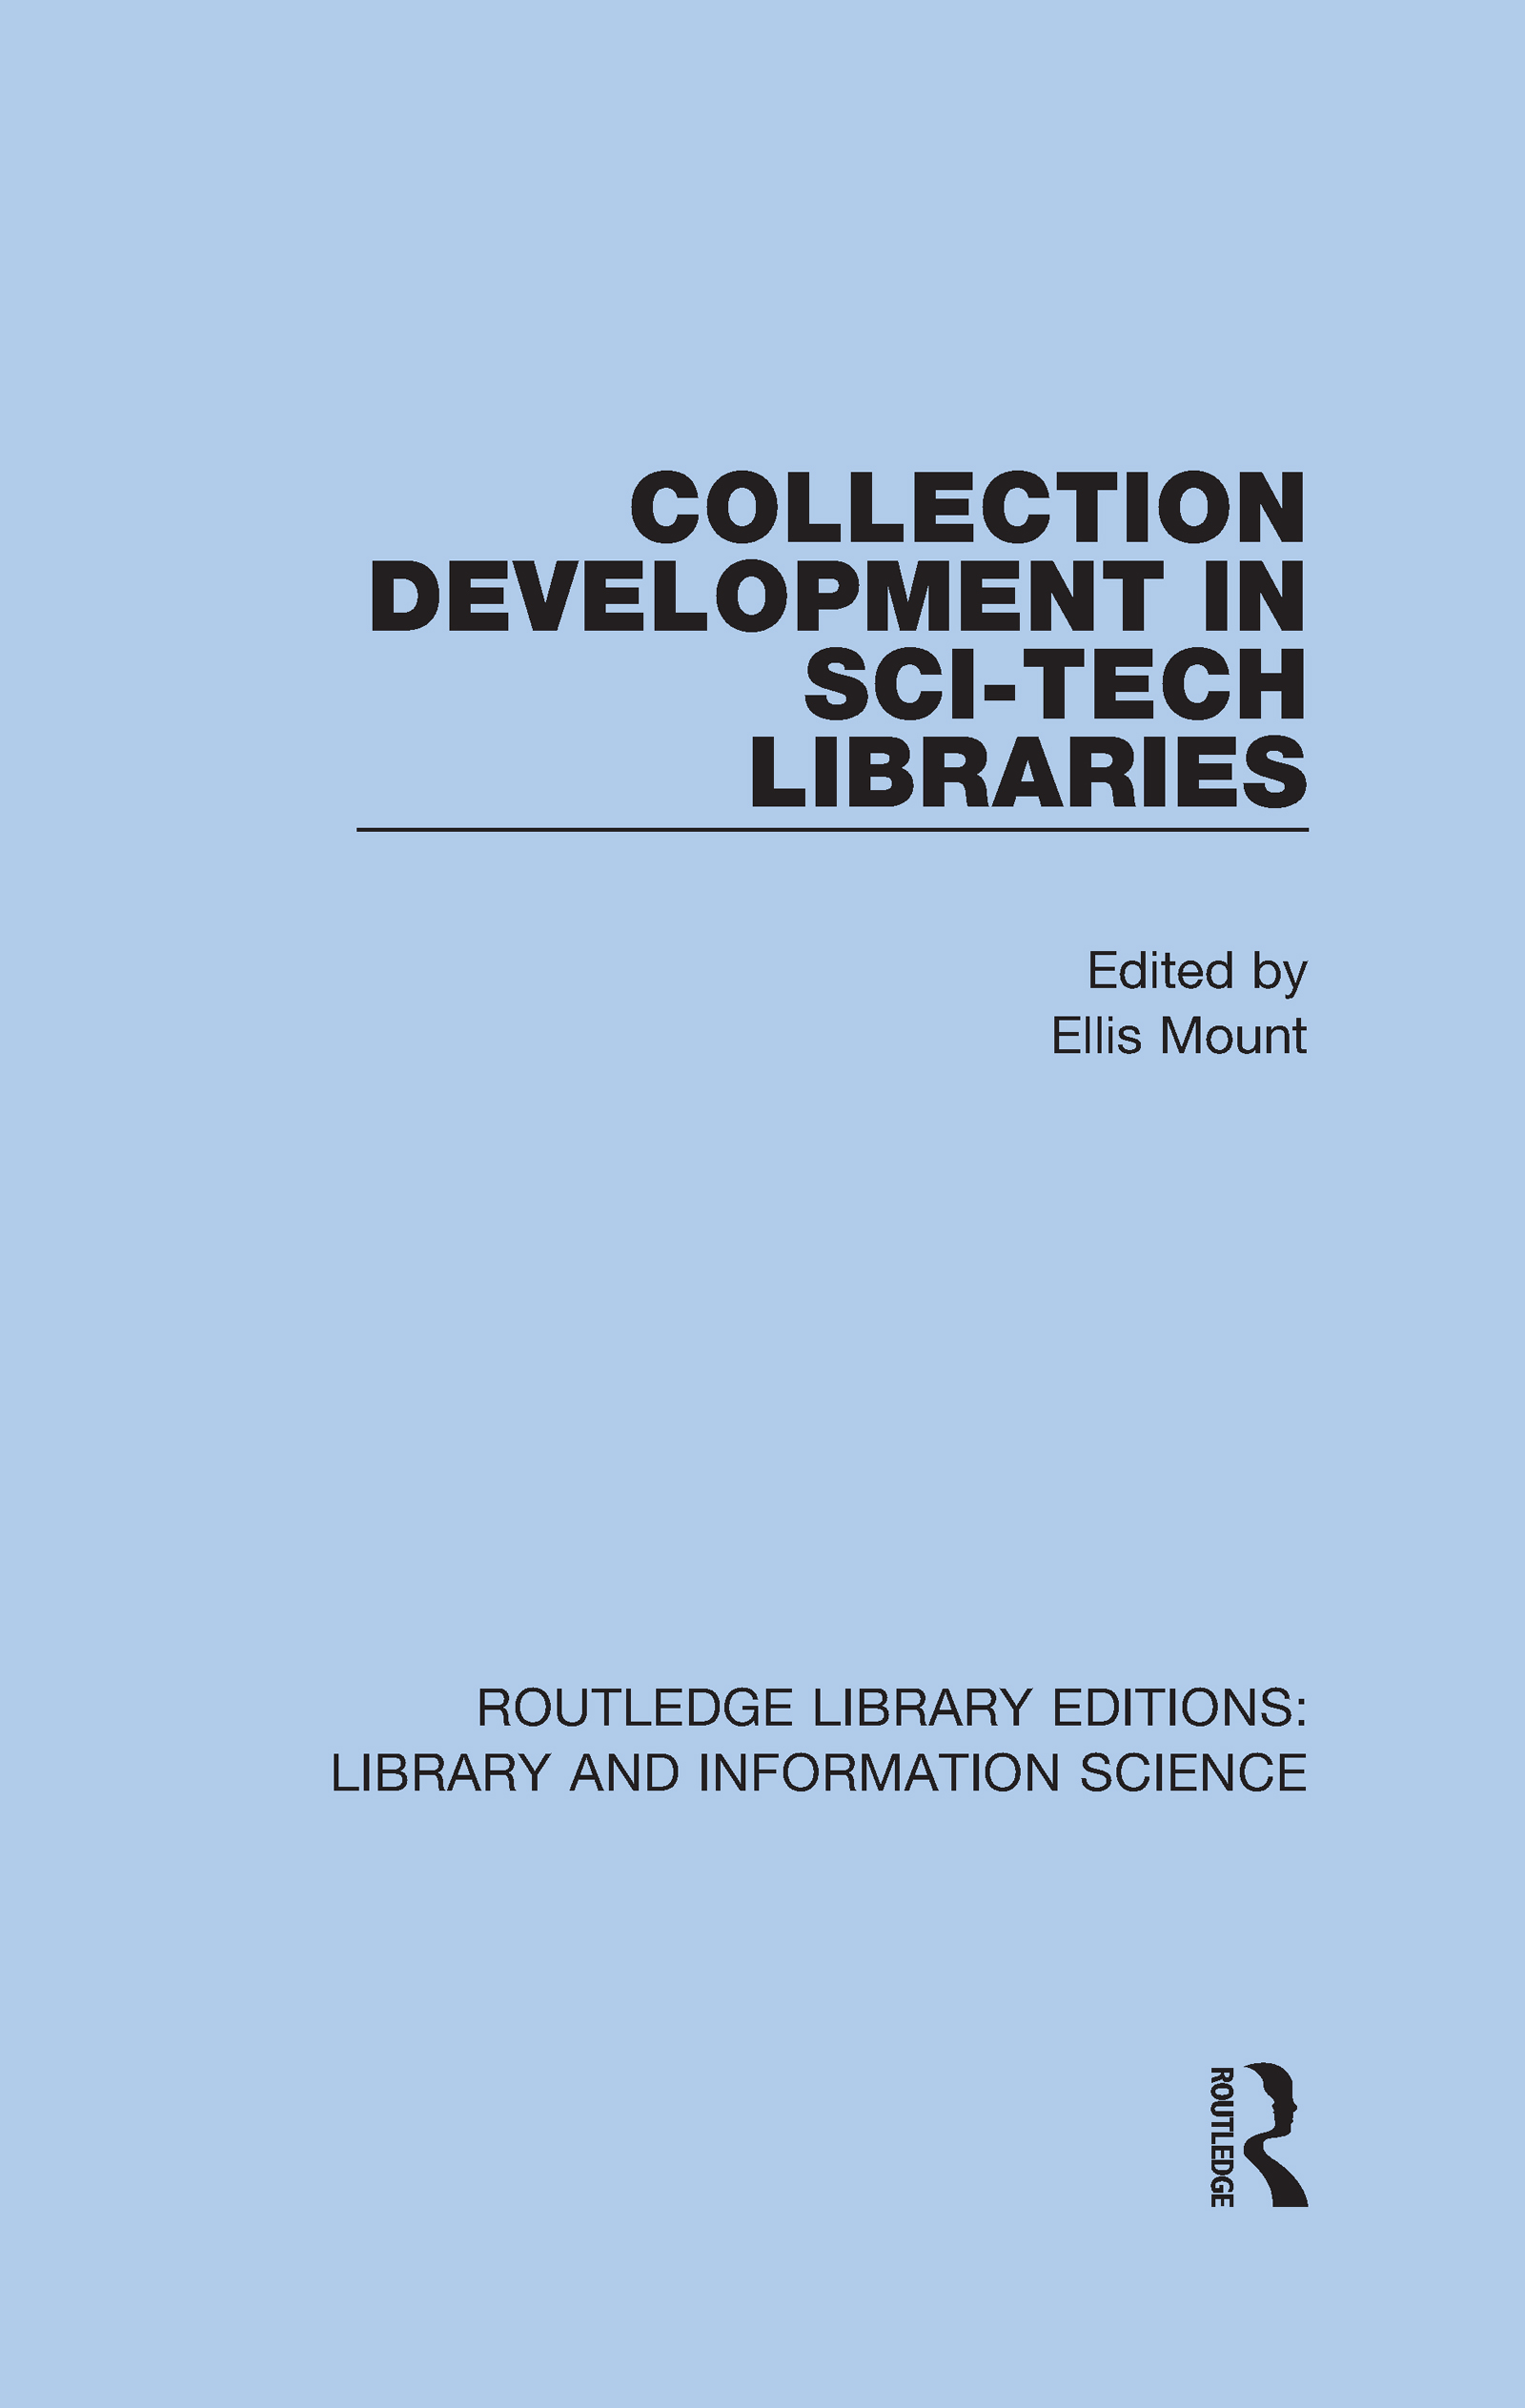 Collection Development in Sci-Tech Libraries